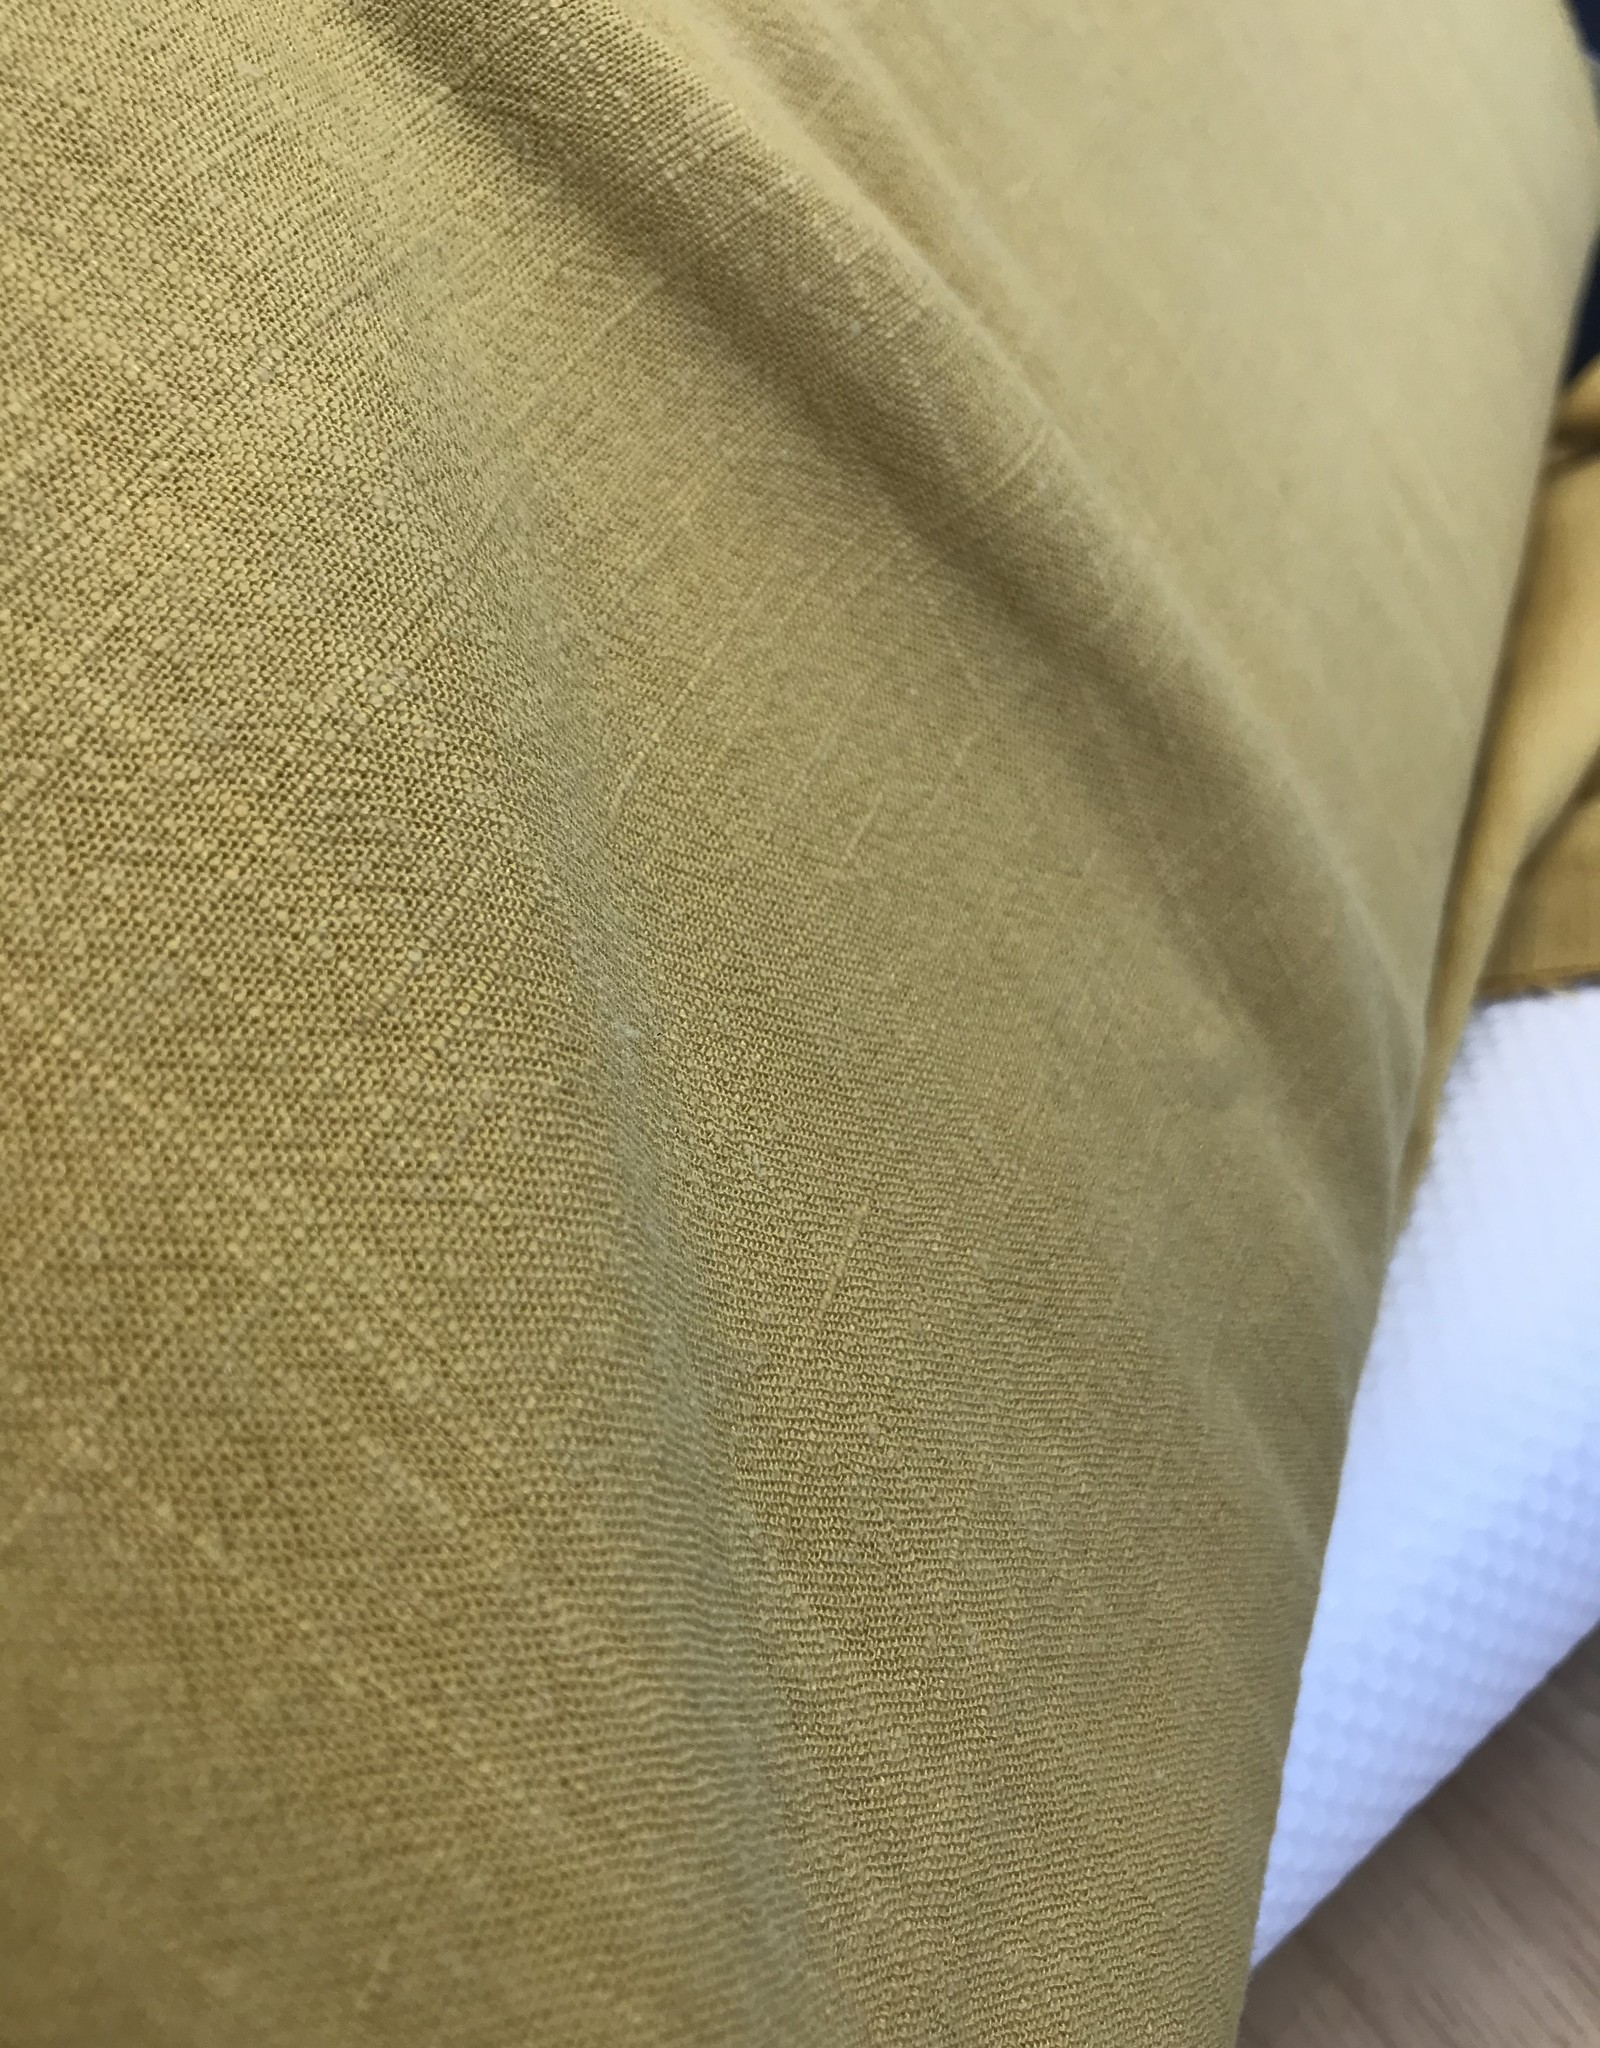 Toptex linnen viscose 'stone-washed' geel